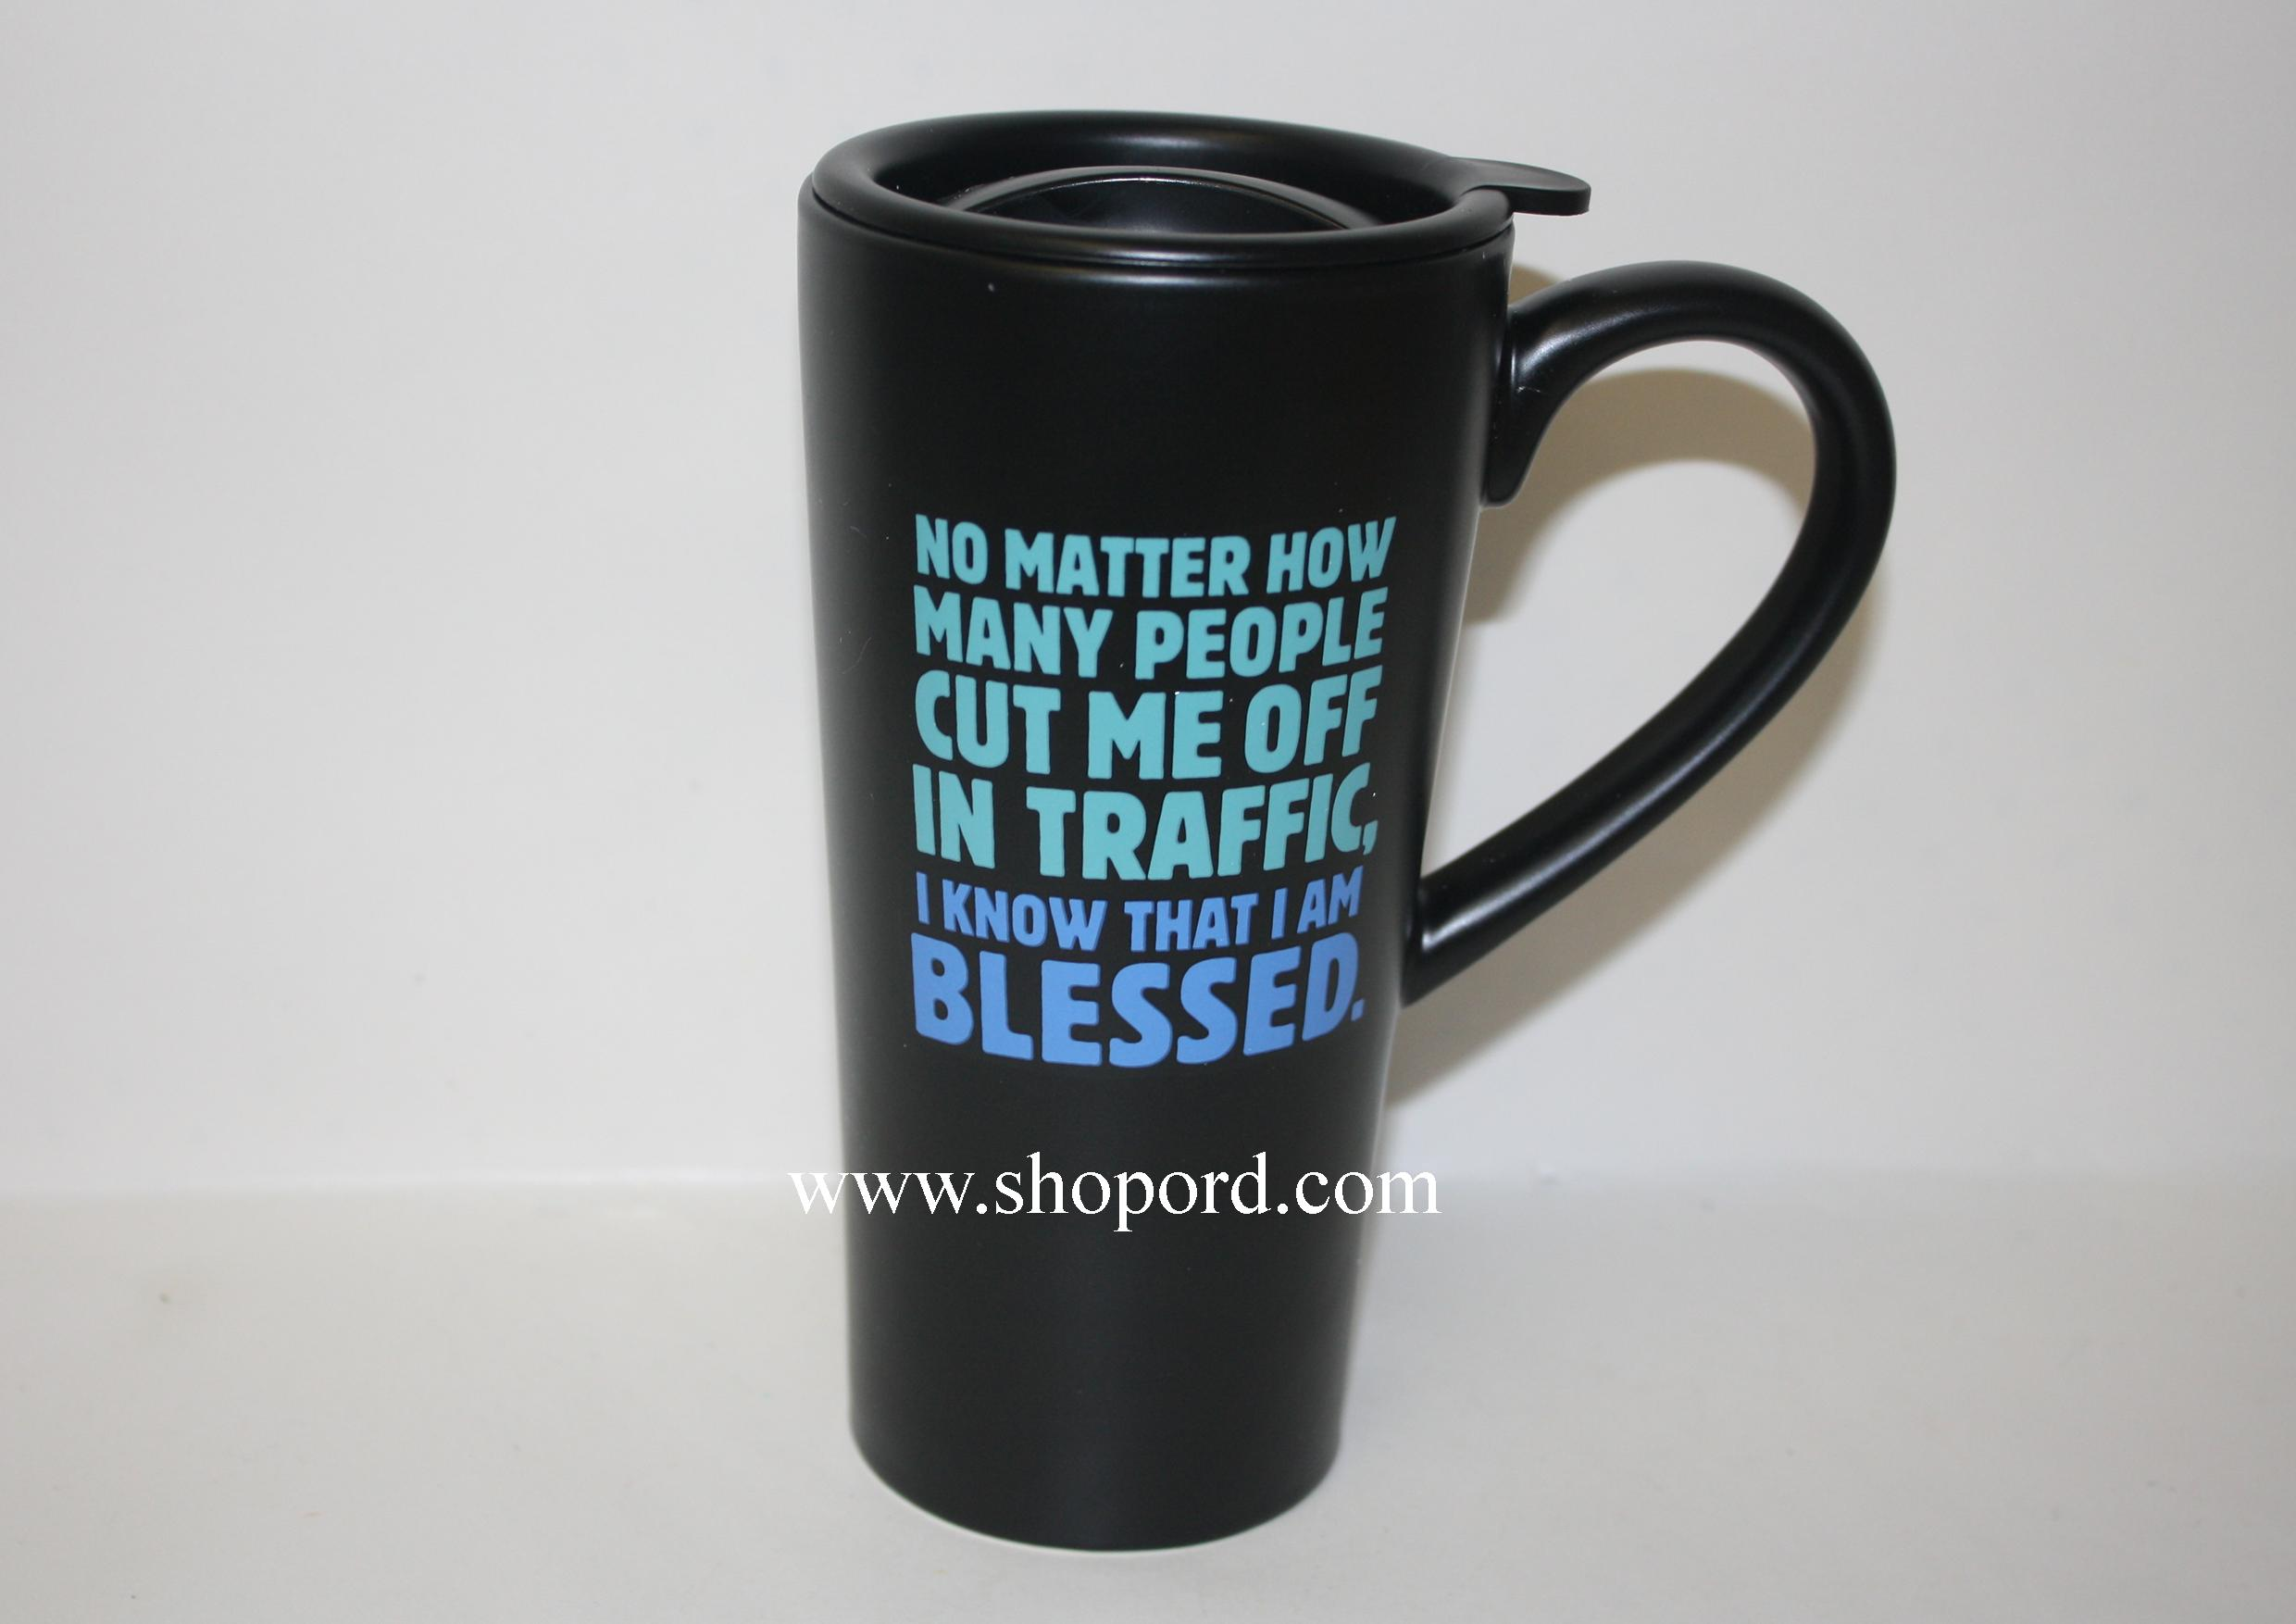 Hallmark No Matter How Many People Cut Me Off In Traffic I Know That I Am Blessed Travel Mug KEI1029